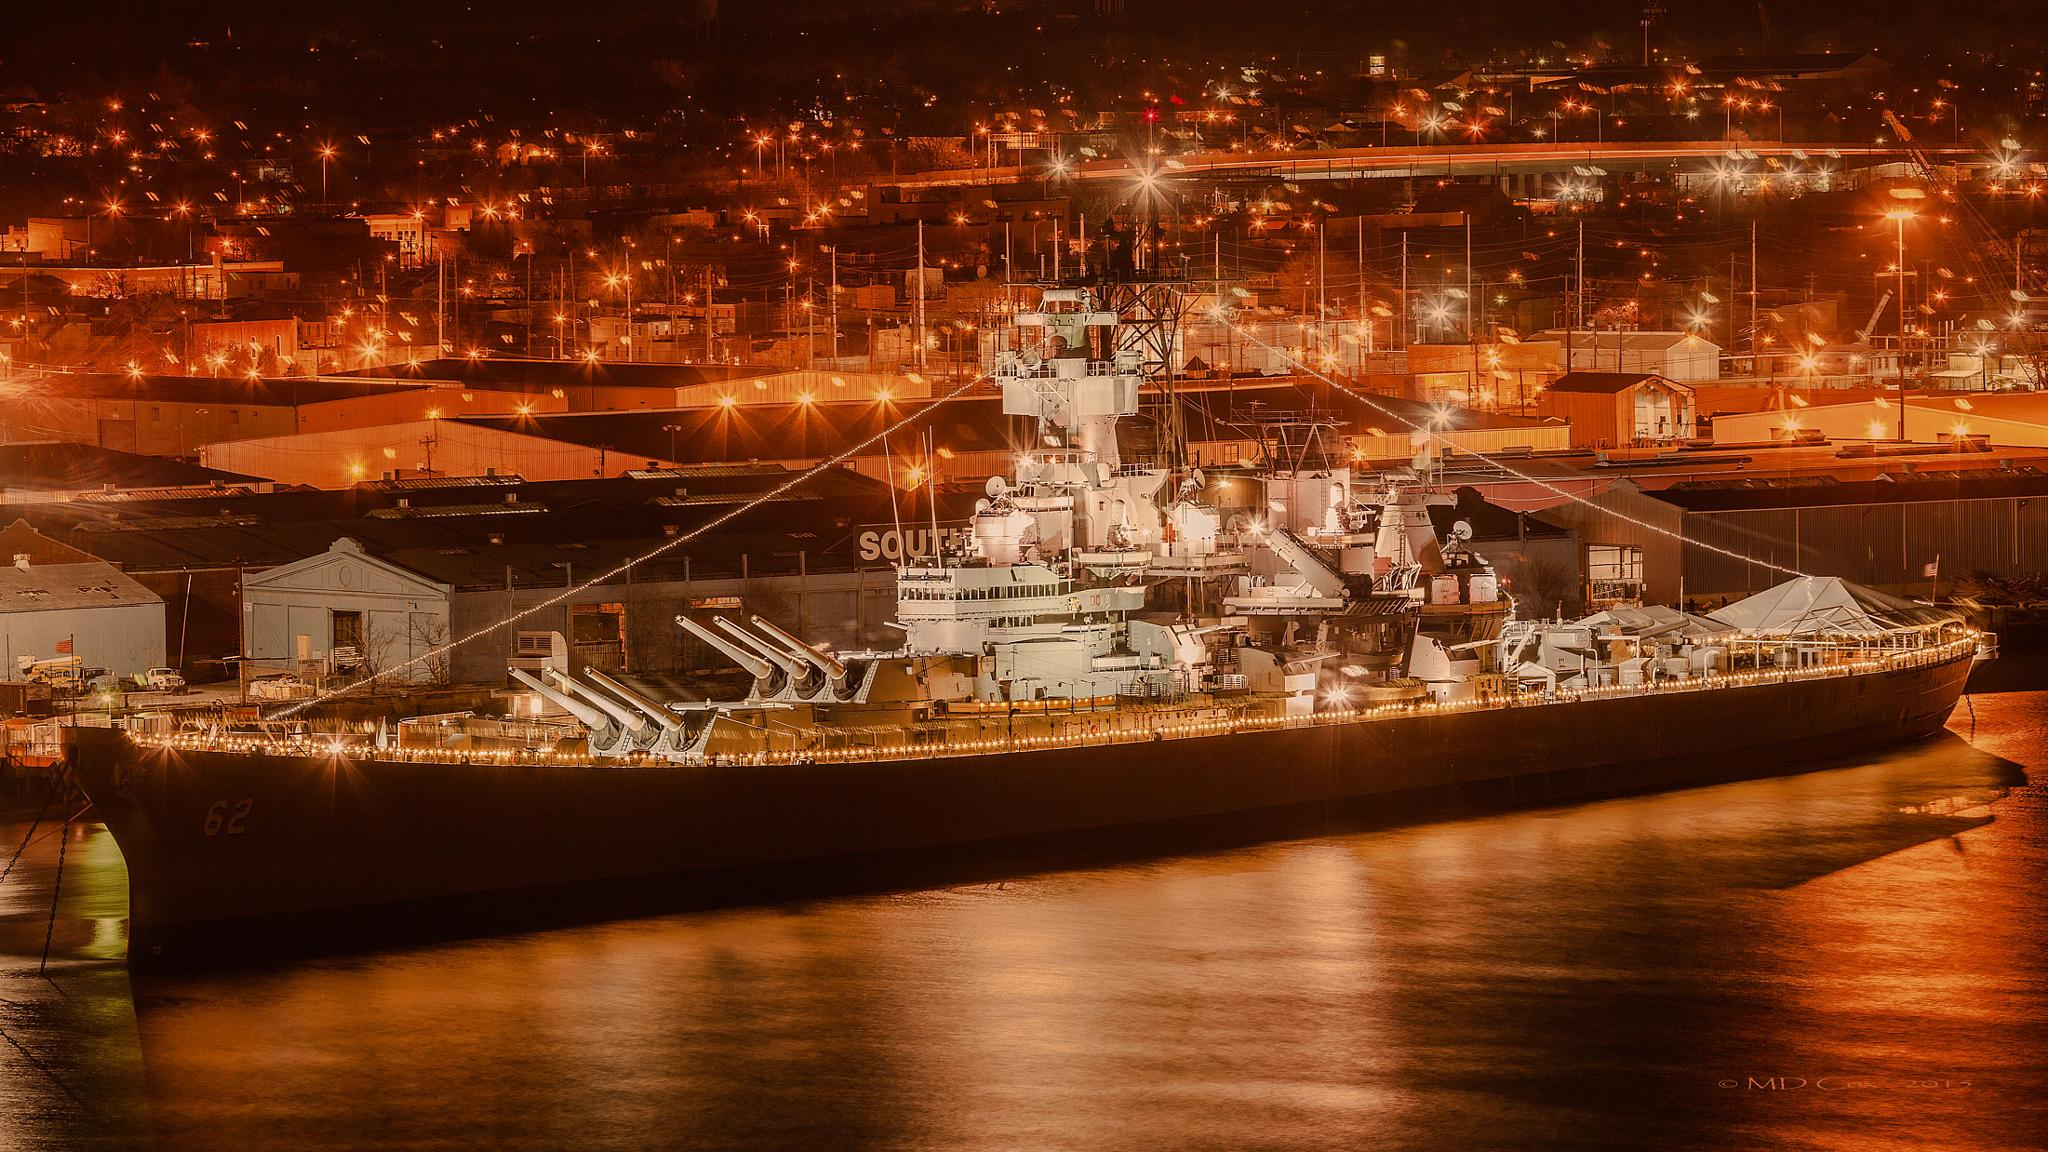 The New Jersey at Night by Michael Cox